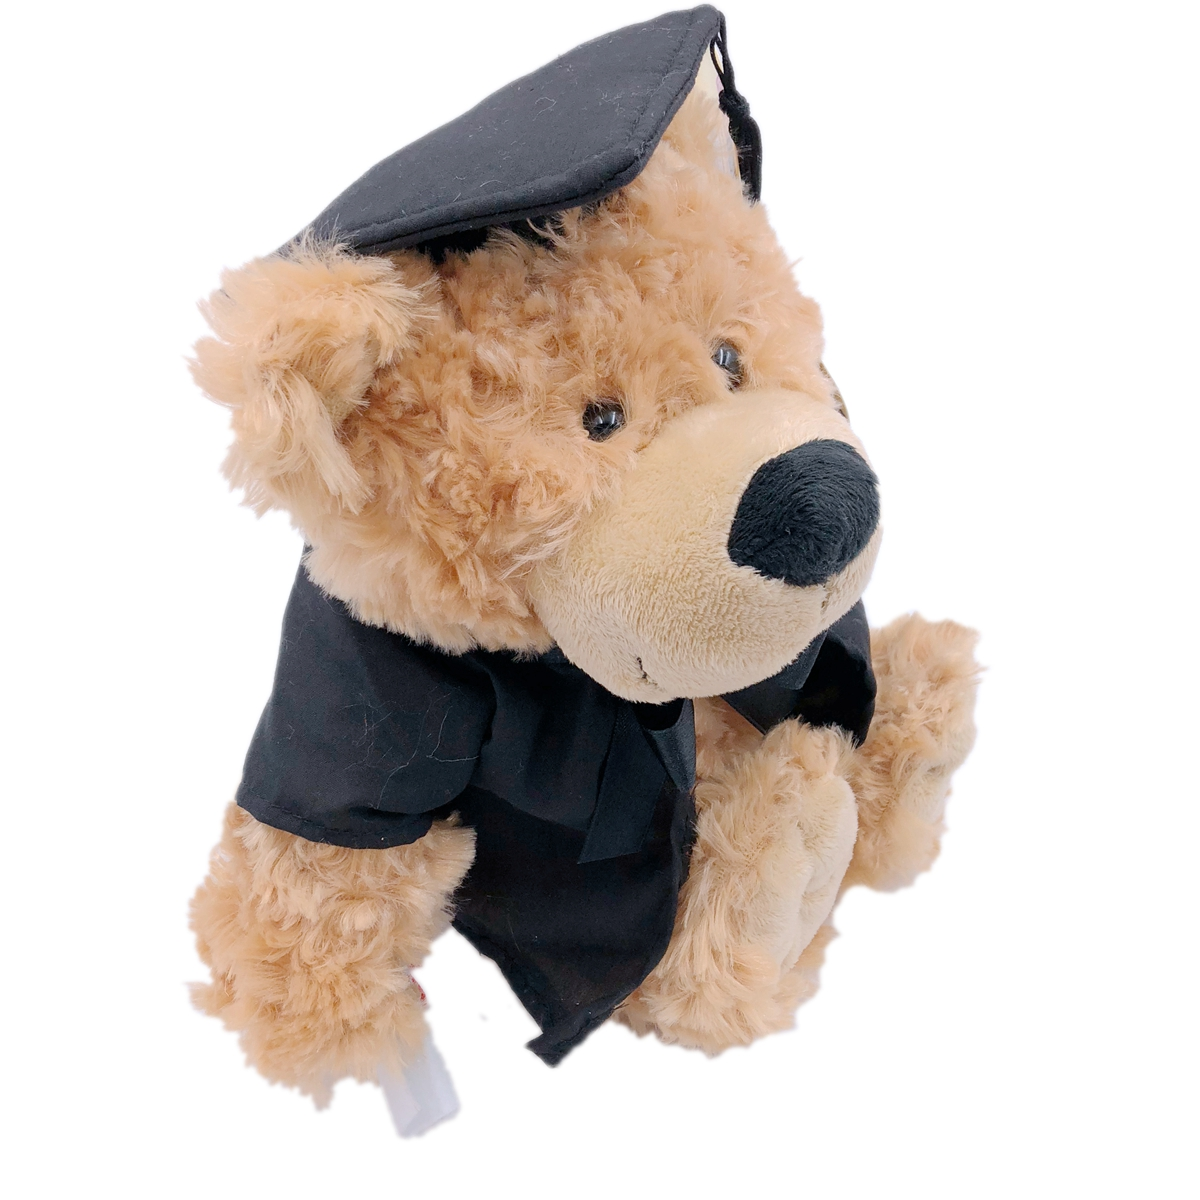 Graduation Teddy Bear Gift With Diploma In Hand Black Gown